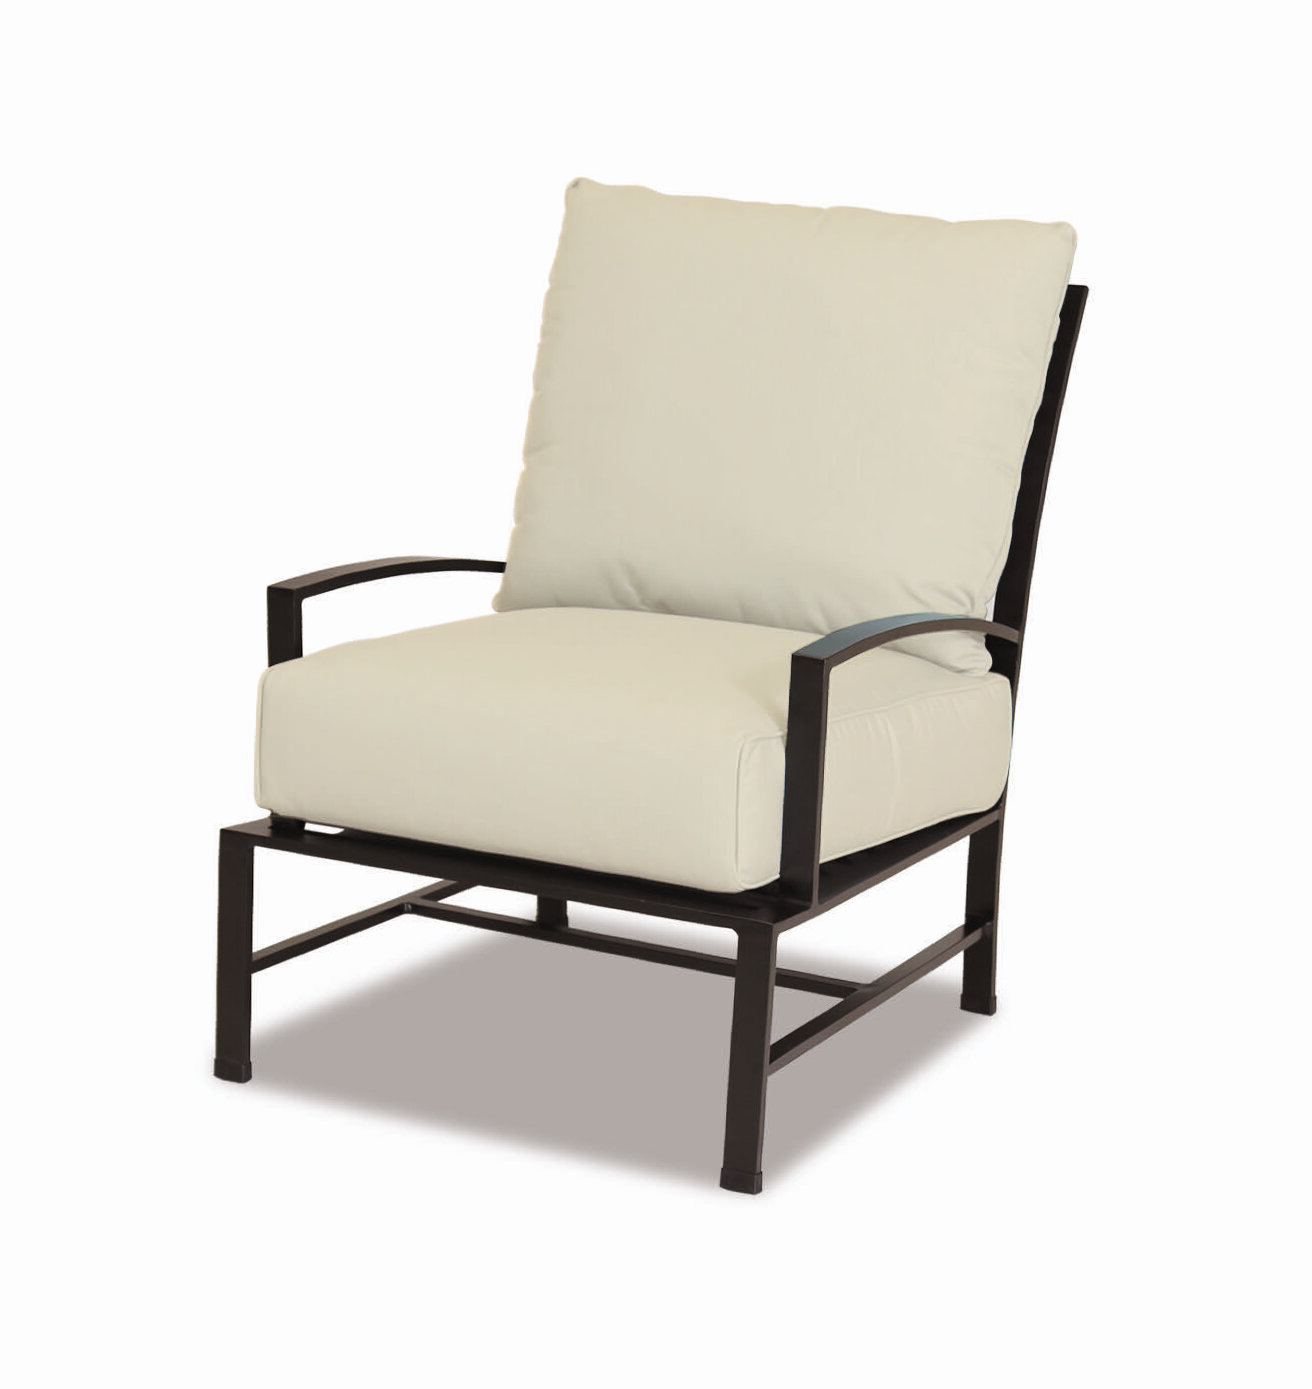 Ivy Bronx Zeman Ultra Comfortable Upholstered Anodized Regarding Fashionable Zeman Ultra Comfortable Upholstered Anodized Aluminum Loveseats With Cushion (View 8 of 25)